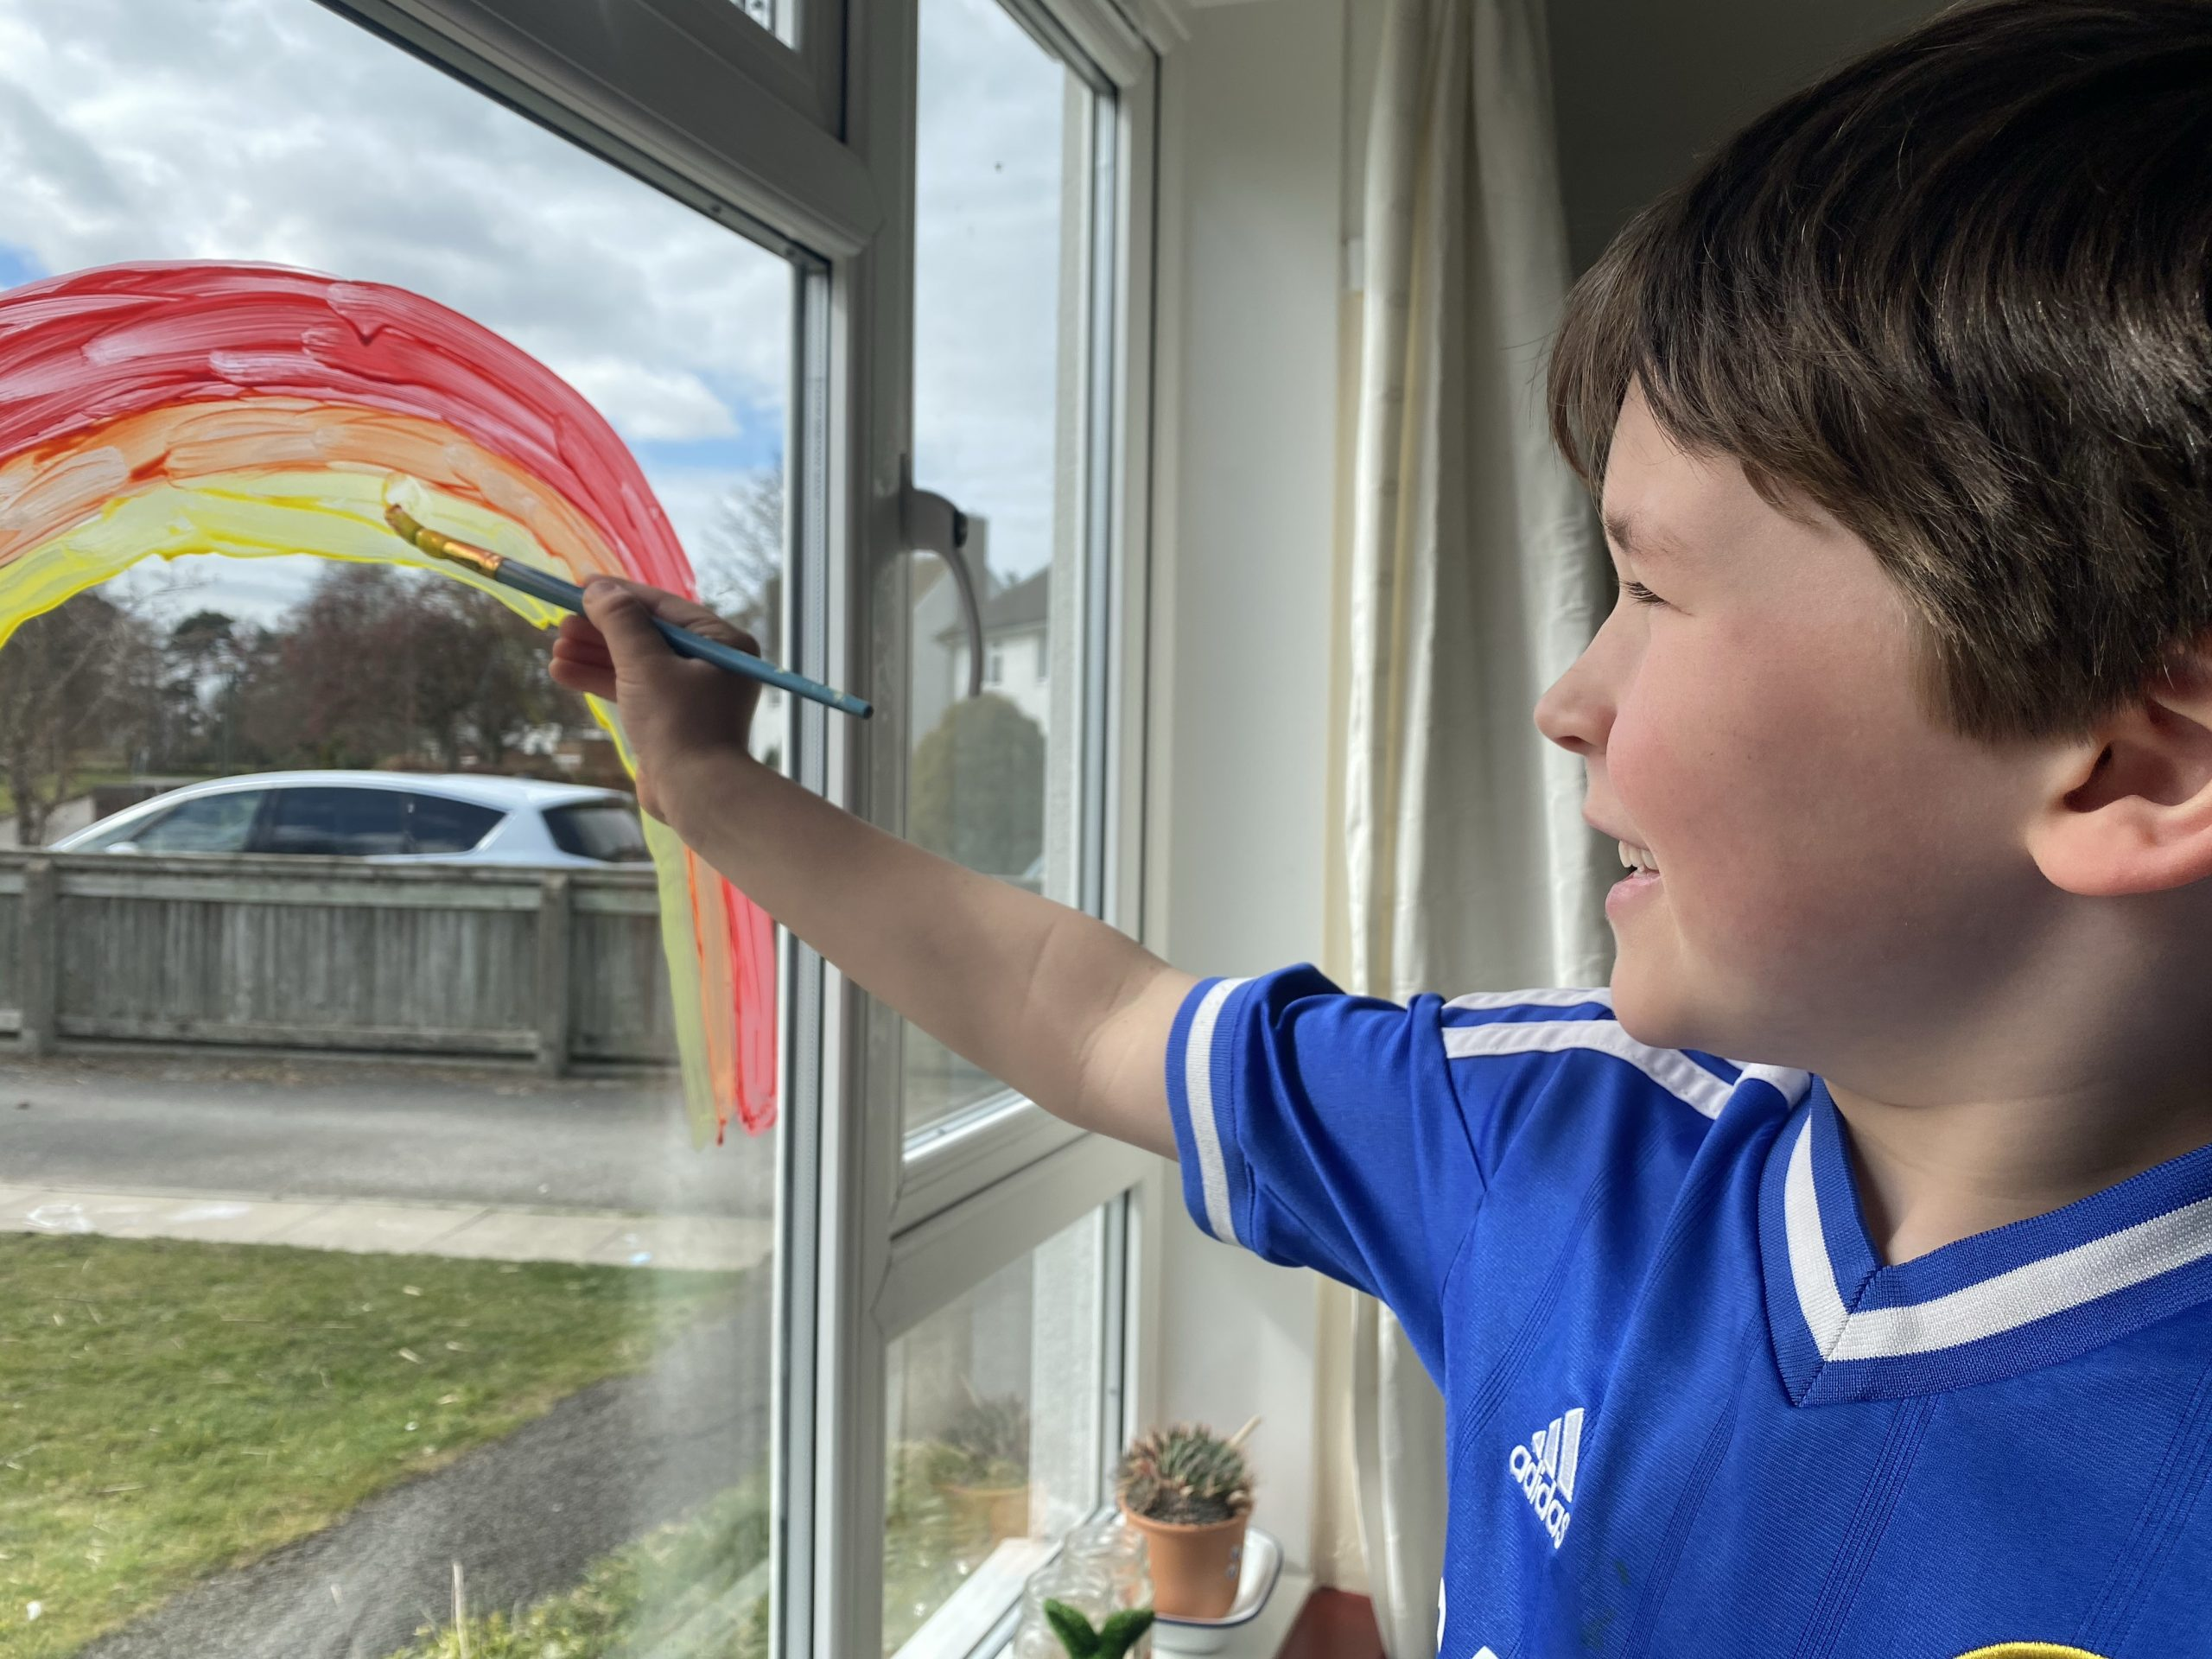 A young boy painting a rainbow on a window